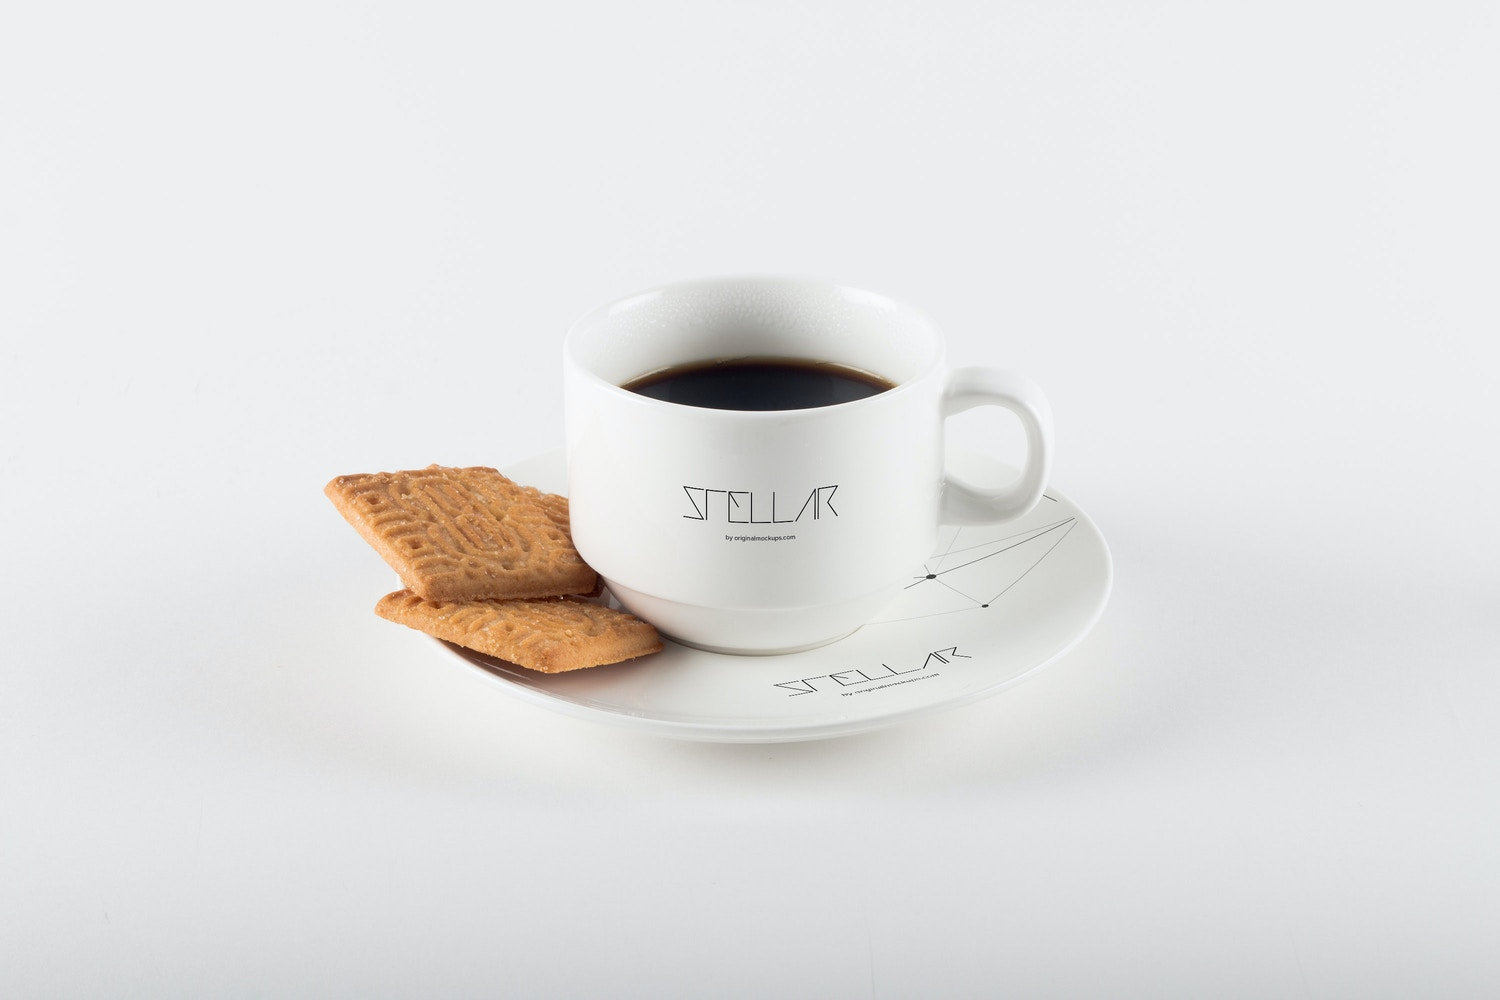 Coffee Cup with Cookies Mockup 03 by Original Mockups on Original Mockups